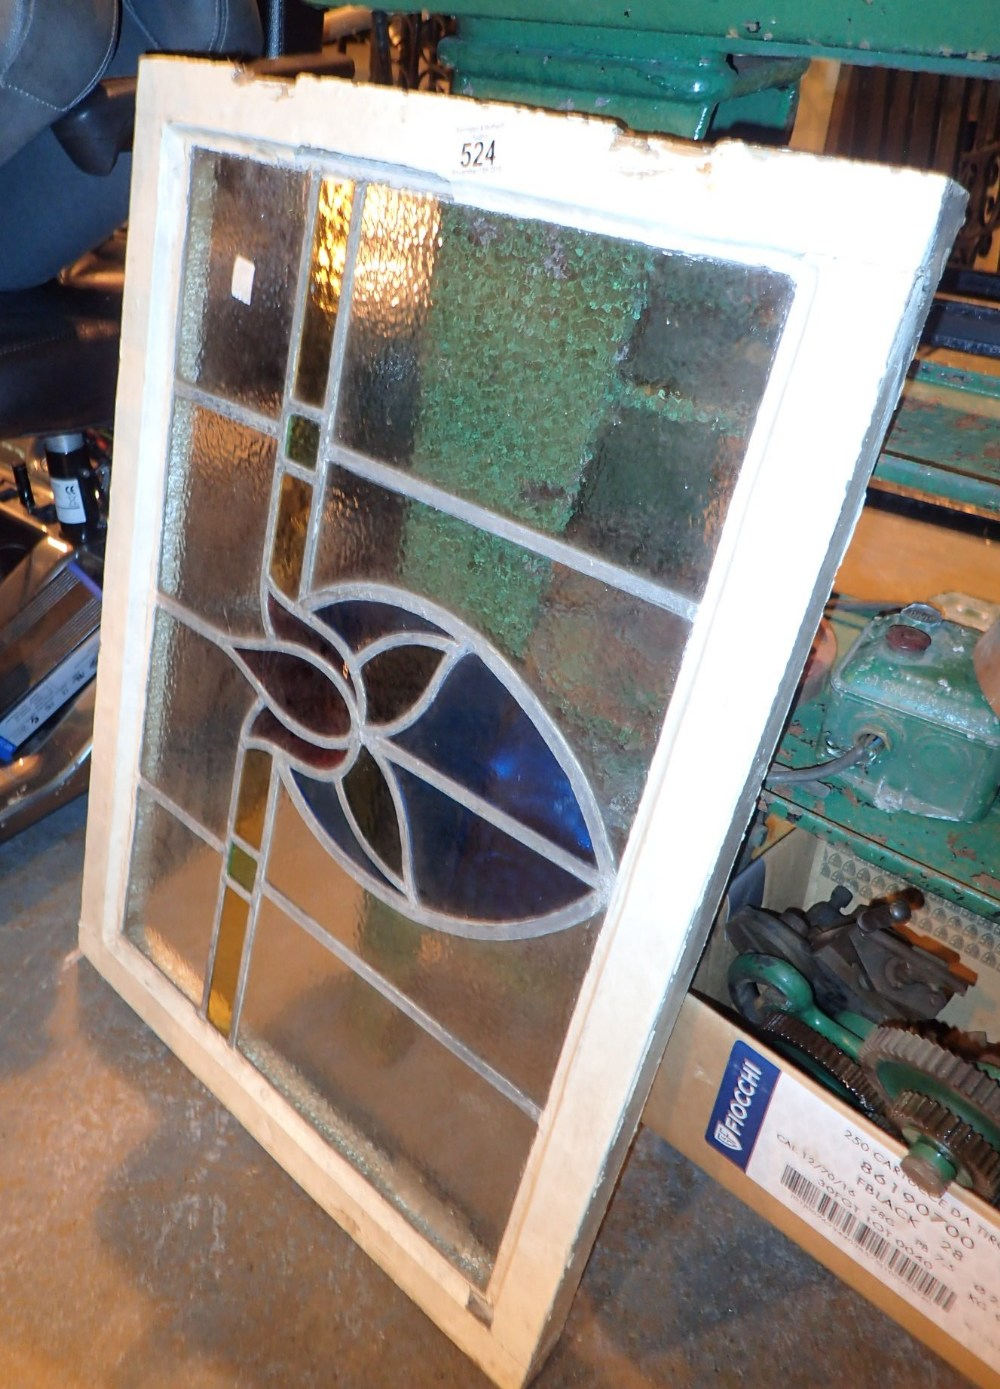 Lot 524 - Vintage stained glass leaded window